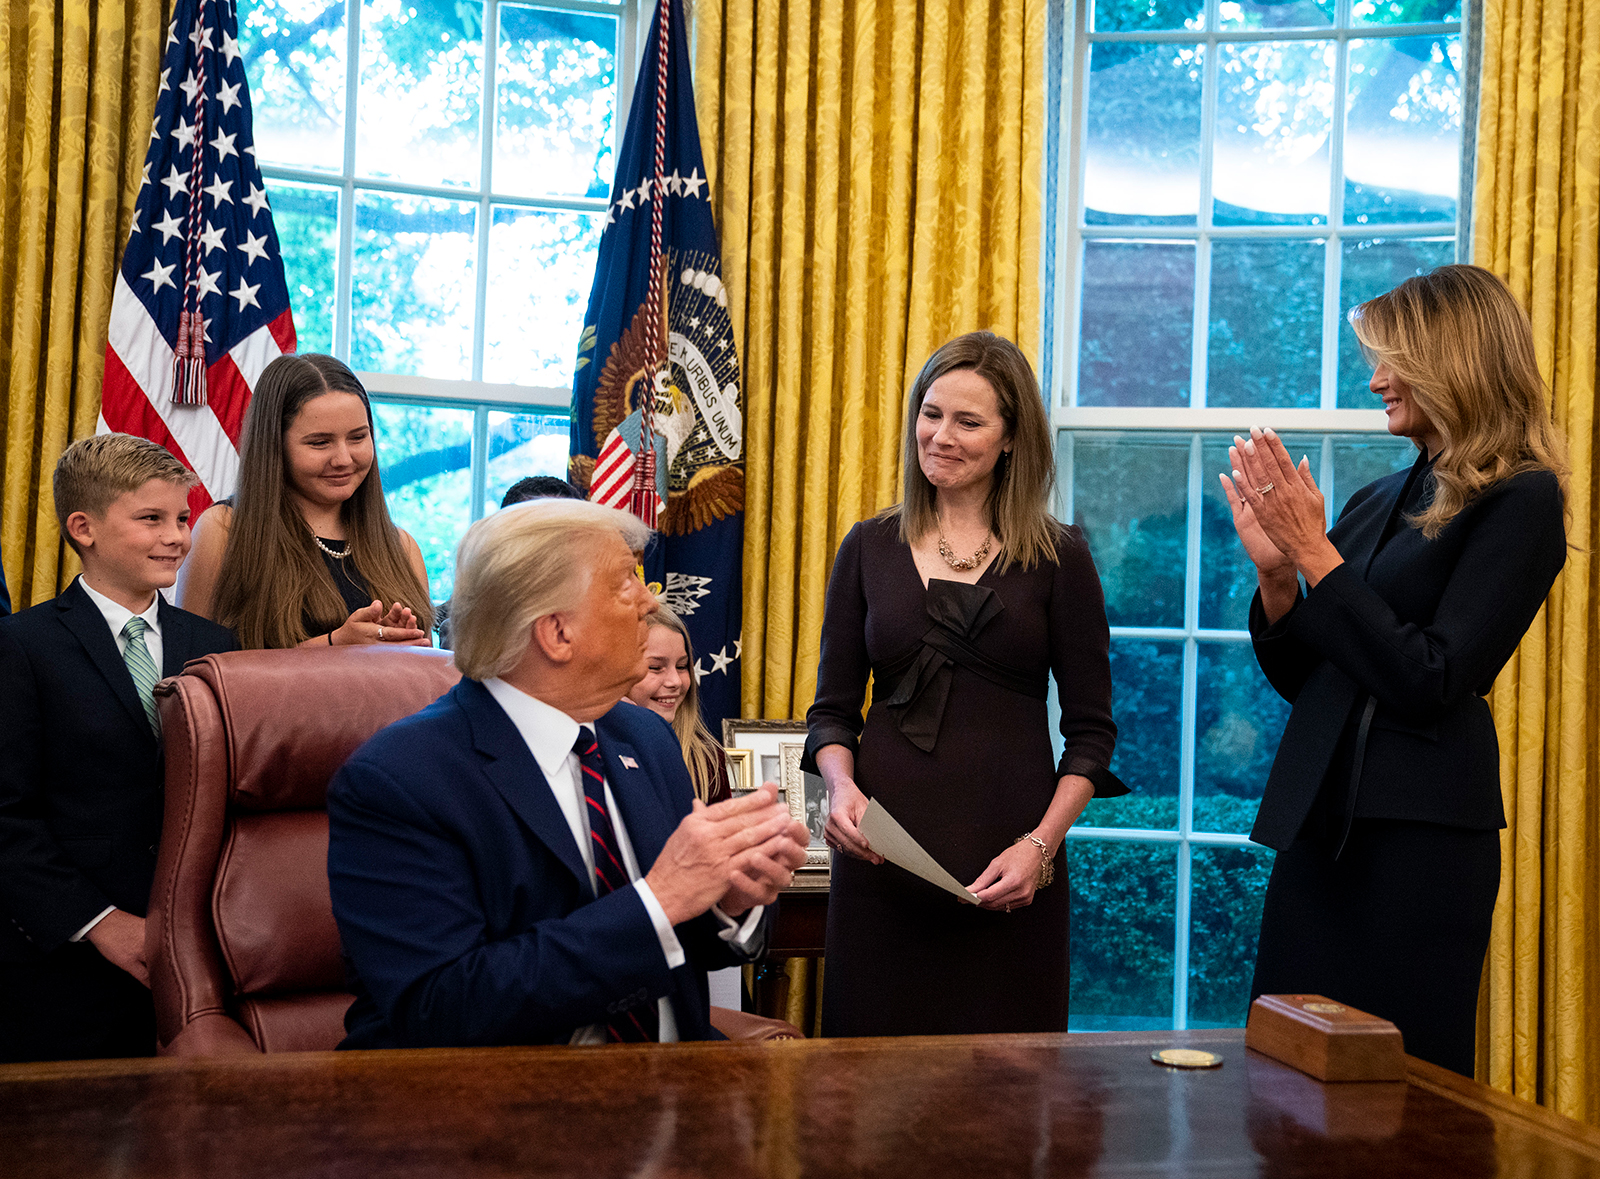 First lady Melania Trump applauds Judge Amy Coney Barrett in the Oval Office prior to the official announcement on Saturday, September 26.